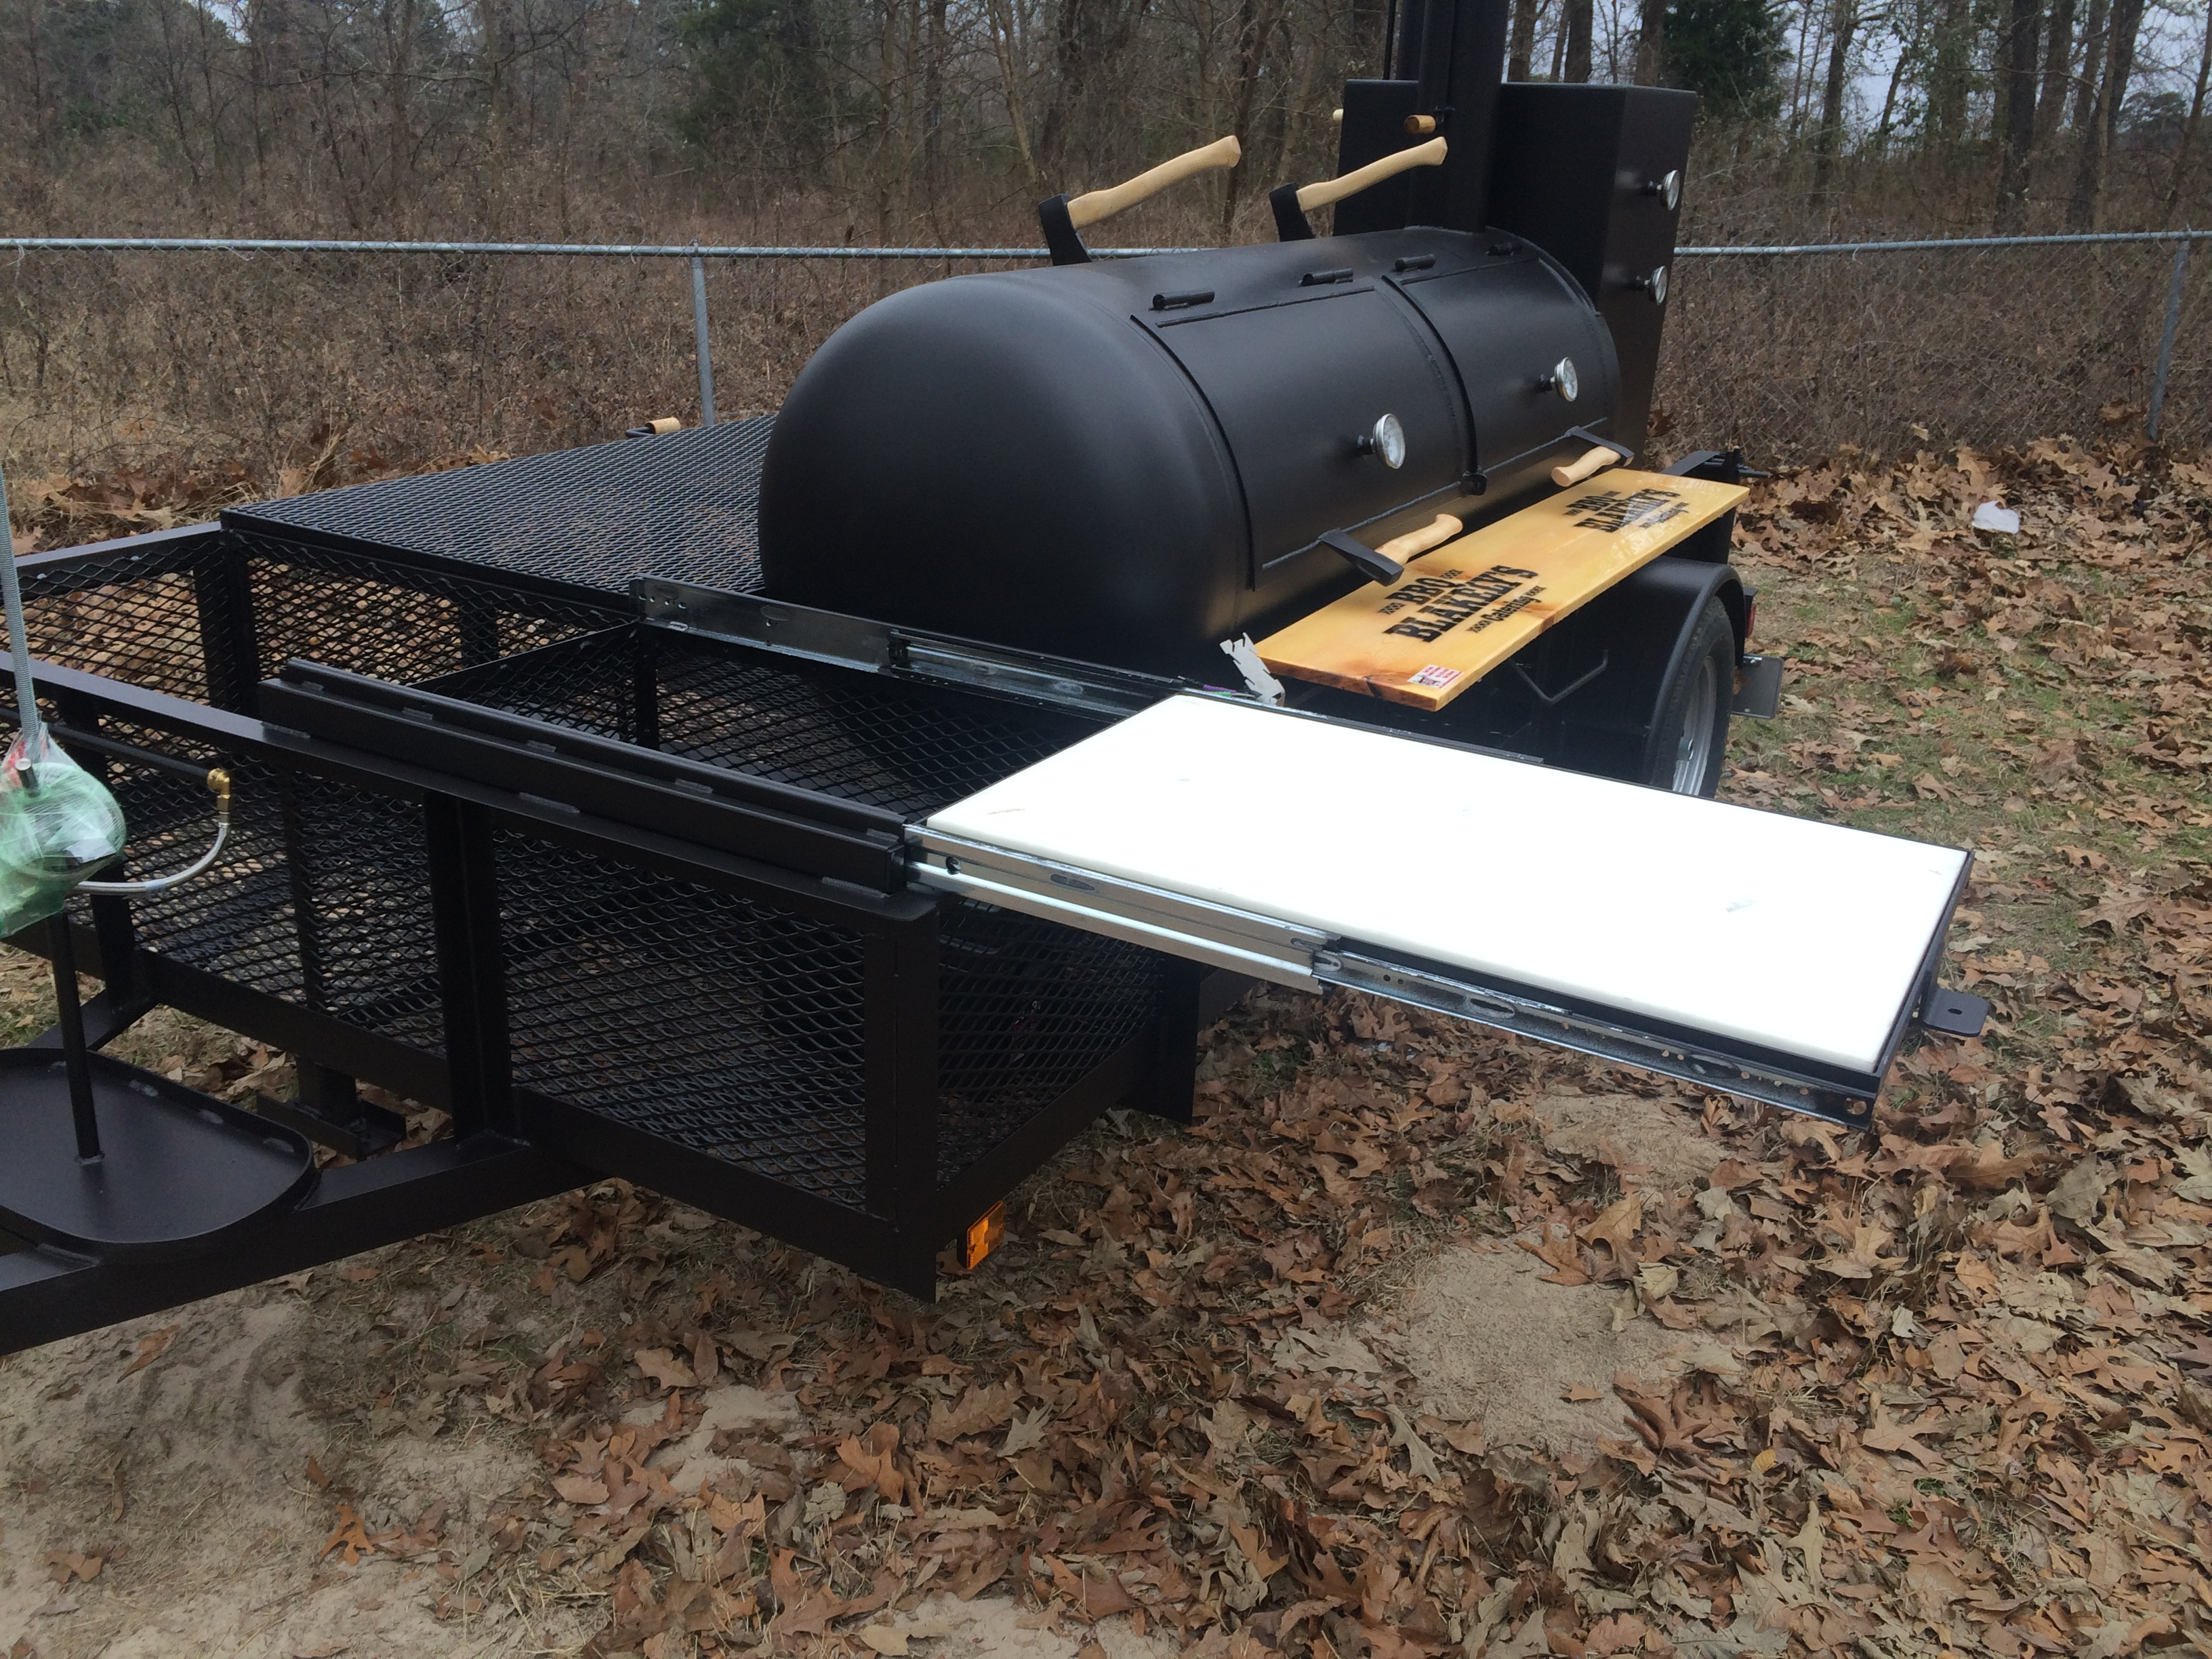 Caterer Edition BBQ Smoker Trailer